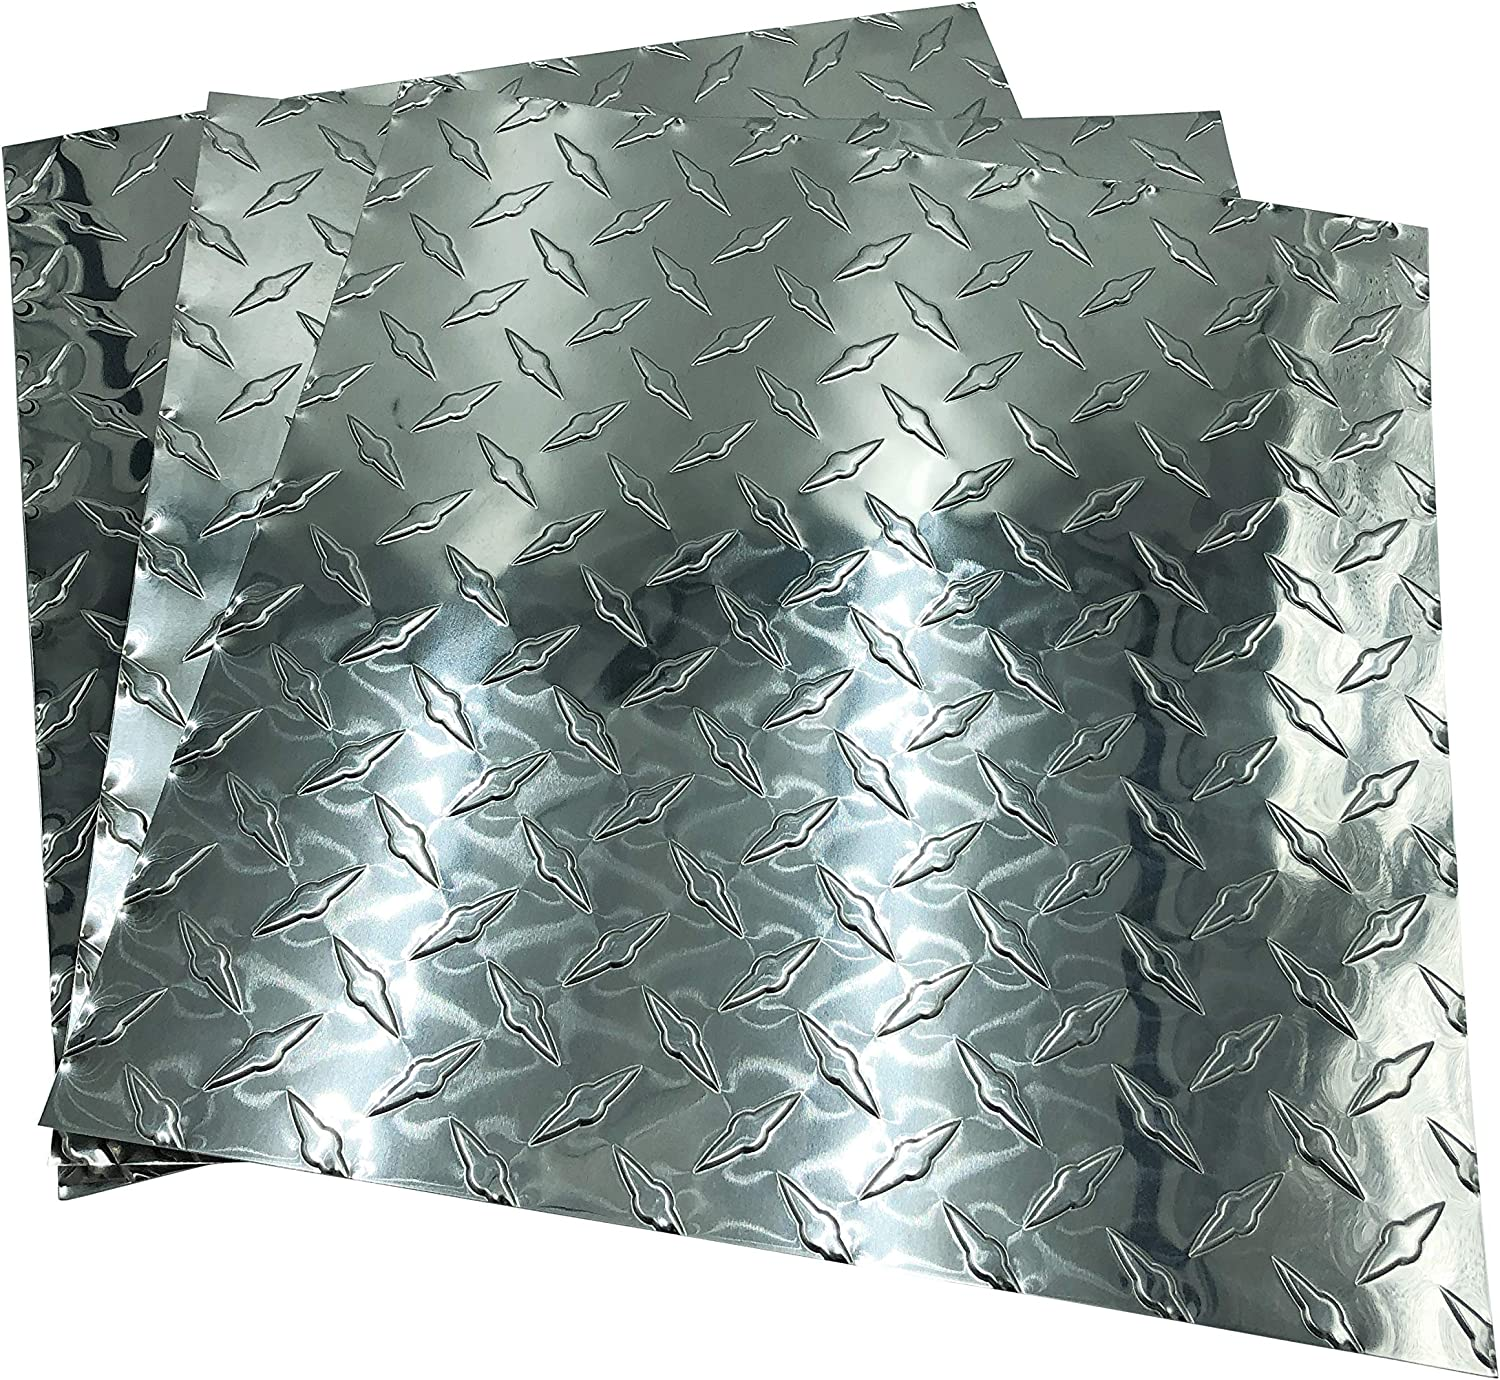 Eagle 1-0.025 Each Roll Includes 10 Free 1//8 Aluminum Rivets 1//8 Drill bit x 10 FT Long Embossed Aluminum Diamond Checker Plate Sheet//Rolls Thin 18 x 10 FT and a Pair of Nitrile Gloves